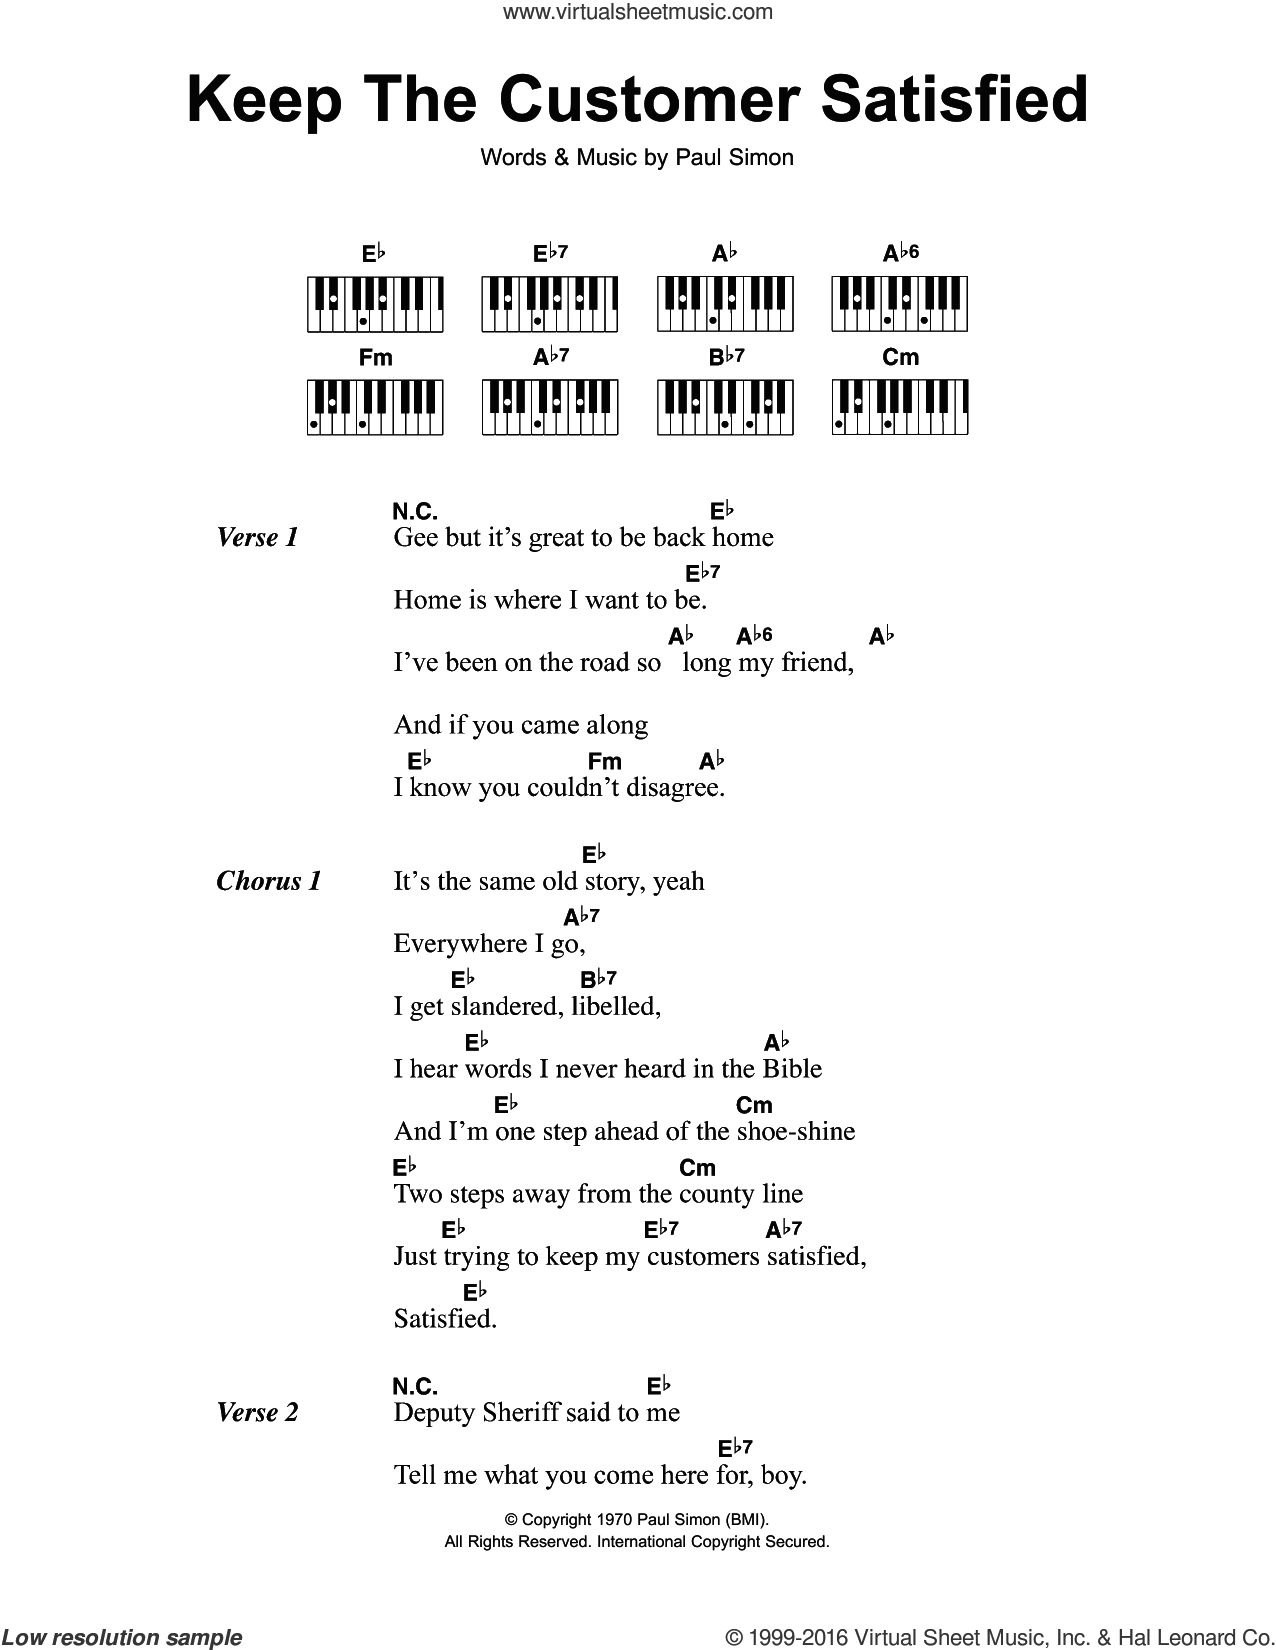 Keep The Customer Satisfied sheet music for piano solo (chords, lyrics, melody) by Paul Simon